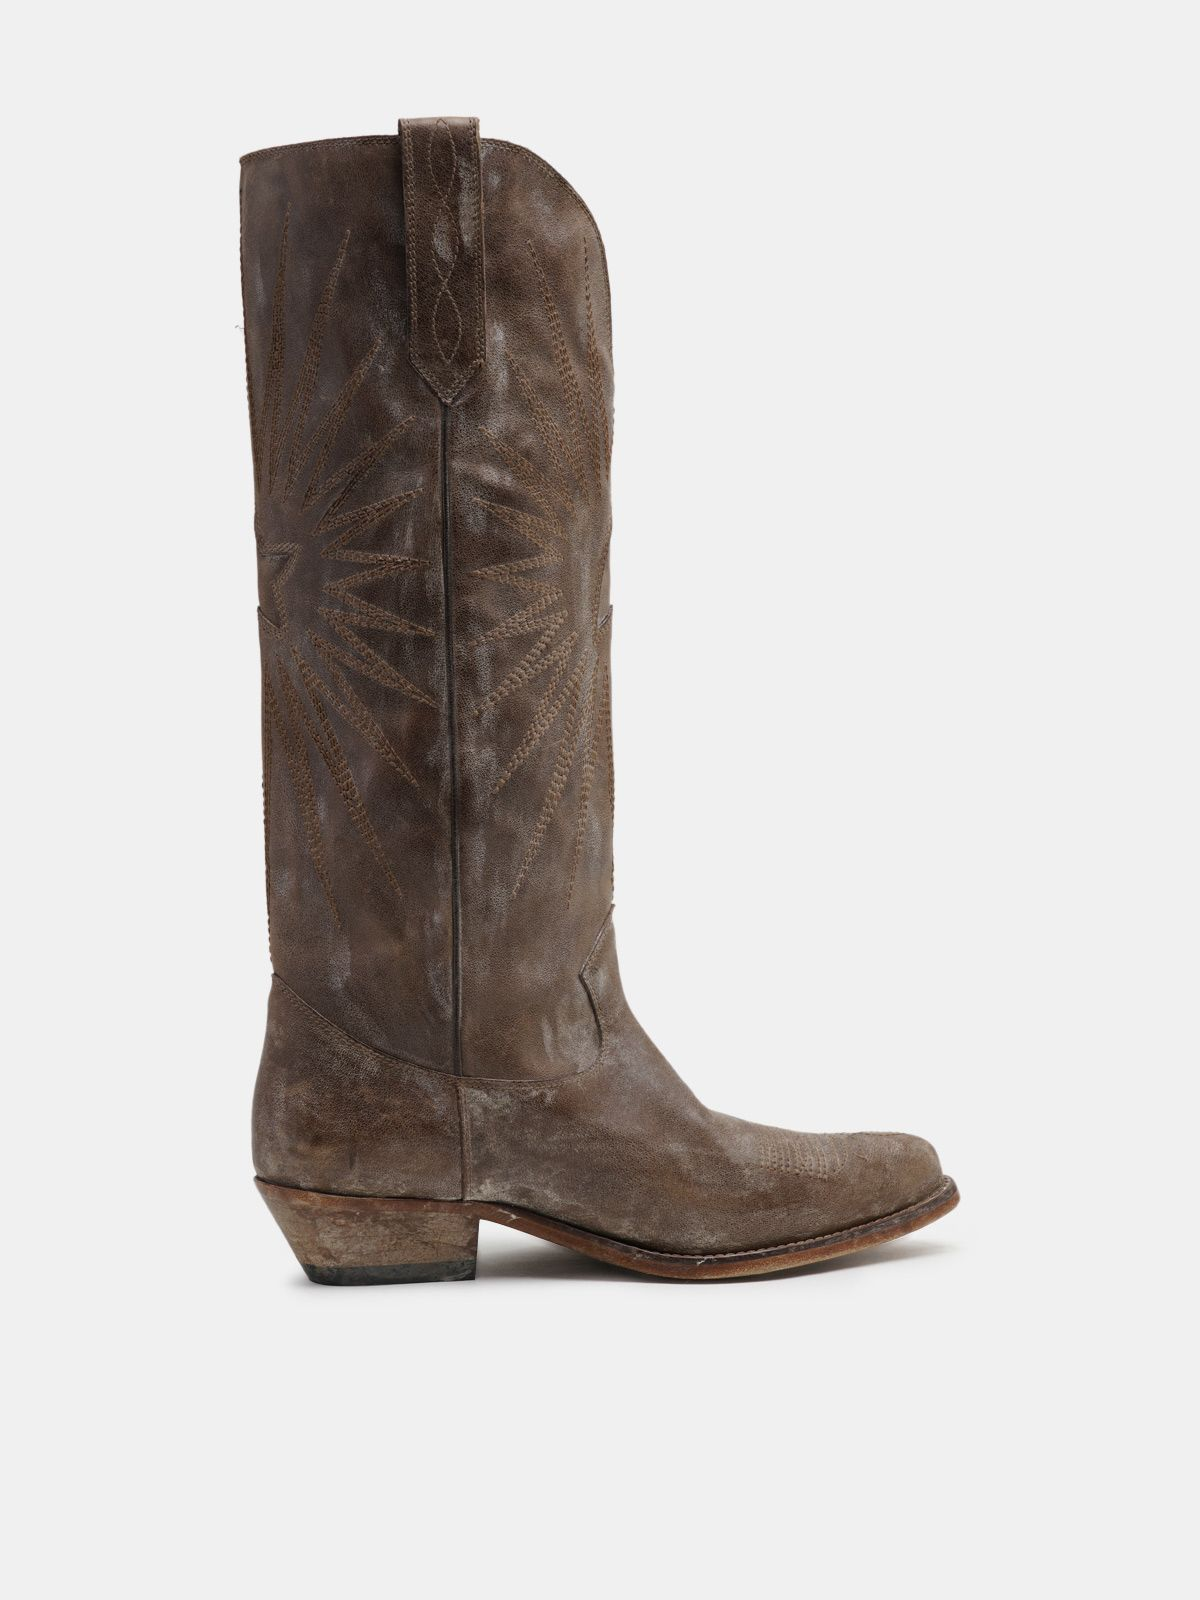 Golden Goose - Wish Star boots in light brown leather in